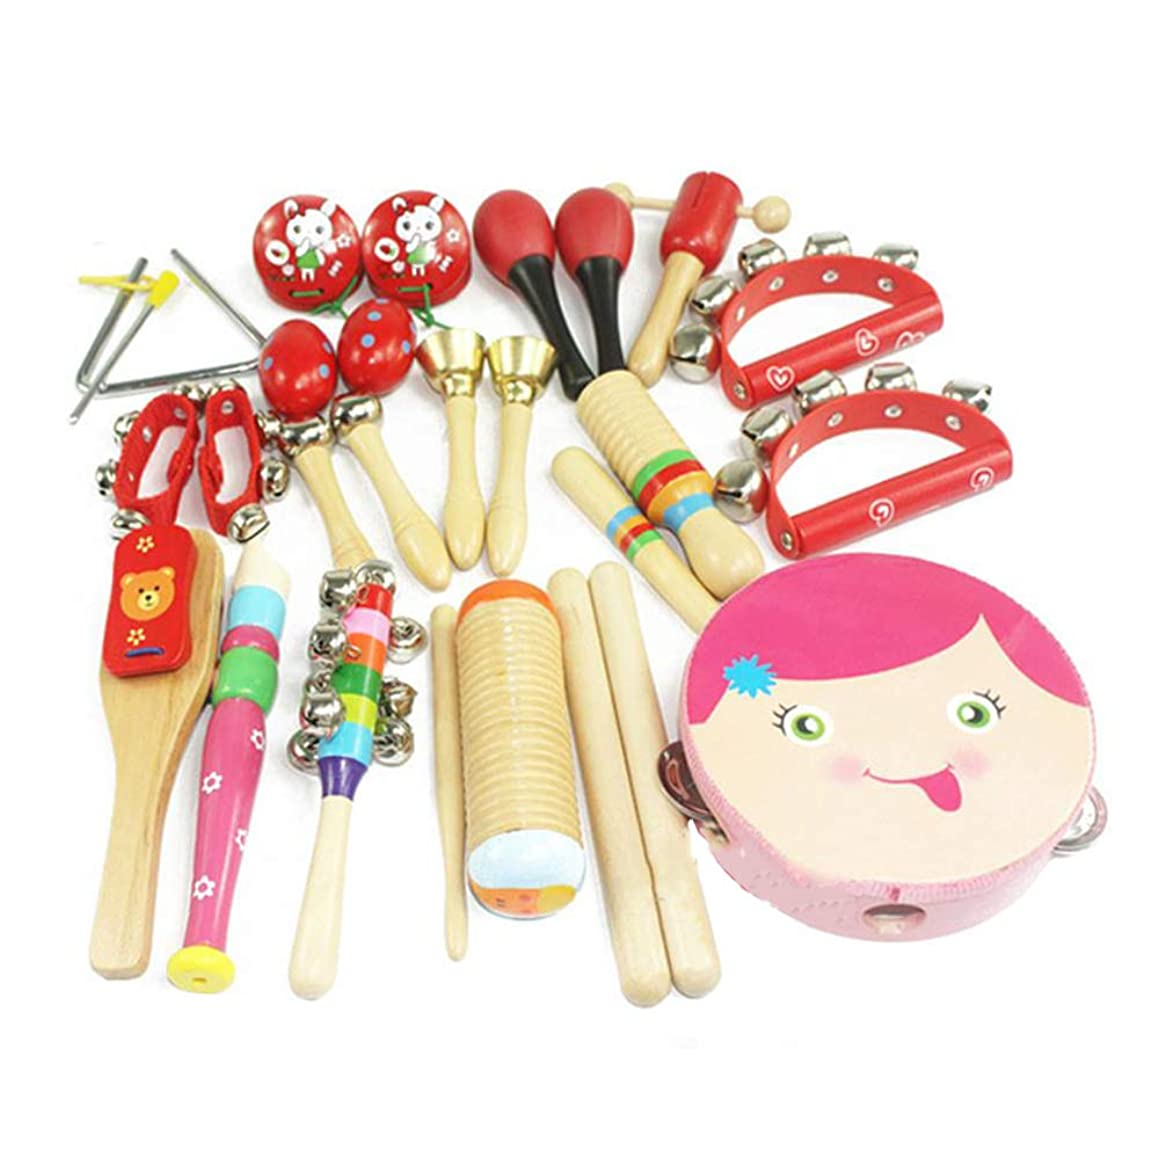 JFMBJS Toddlers Musical Instrument Set, 16 Pcs Wooden Percussion Toy for Boys Girls, Rhythm Band Set Tambourine Finger Castanets for Preschool Children and Kids